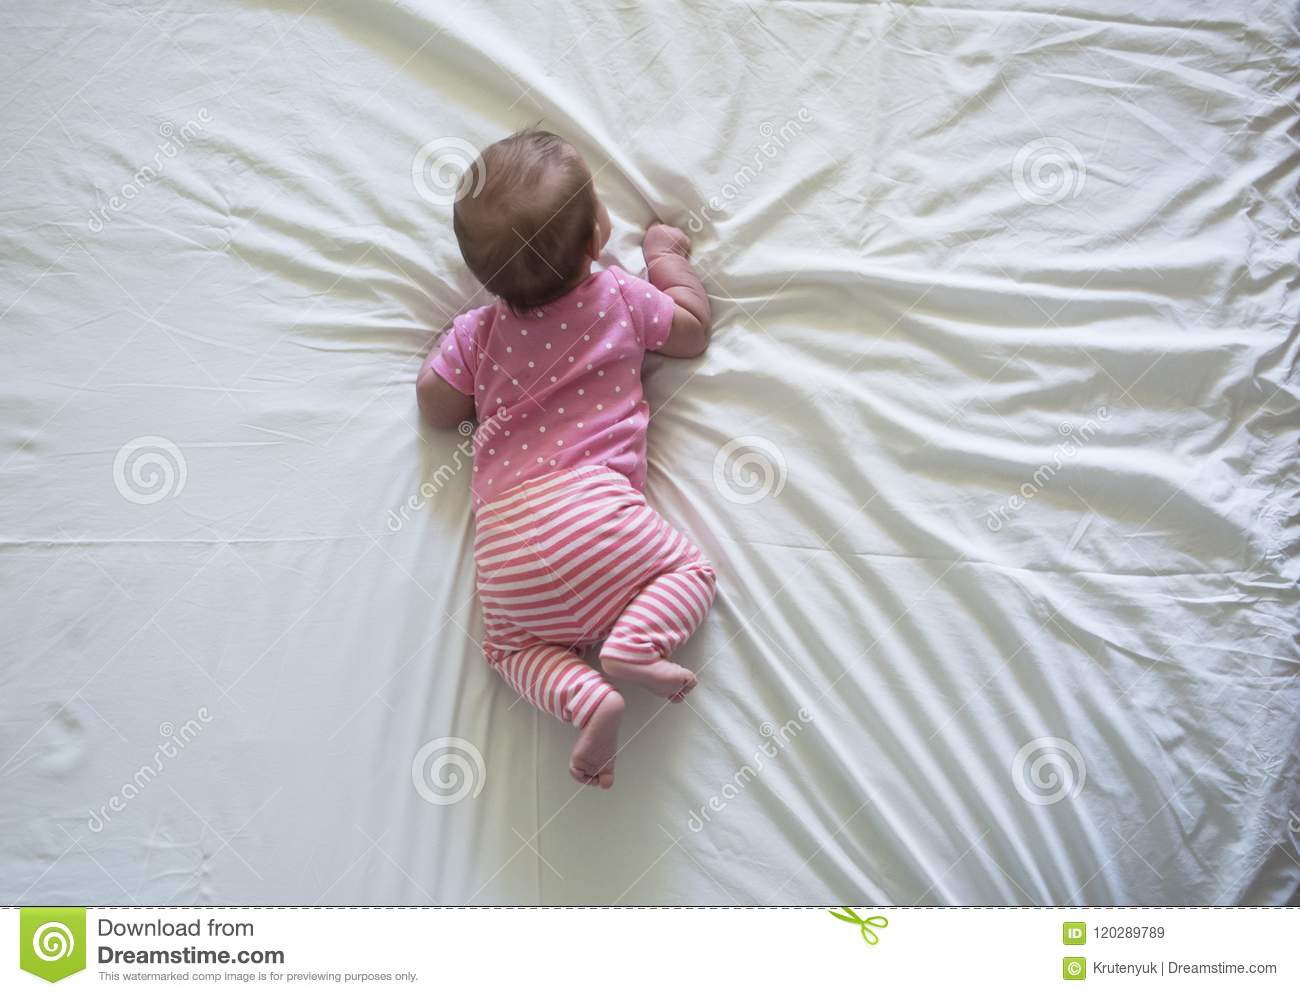 65b991355 Newborn Baby Girl Lying On Her Stomach Stock Image - Image of infant ...